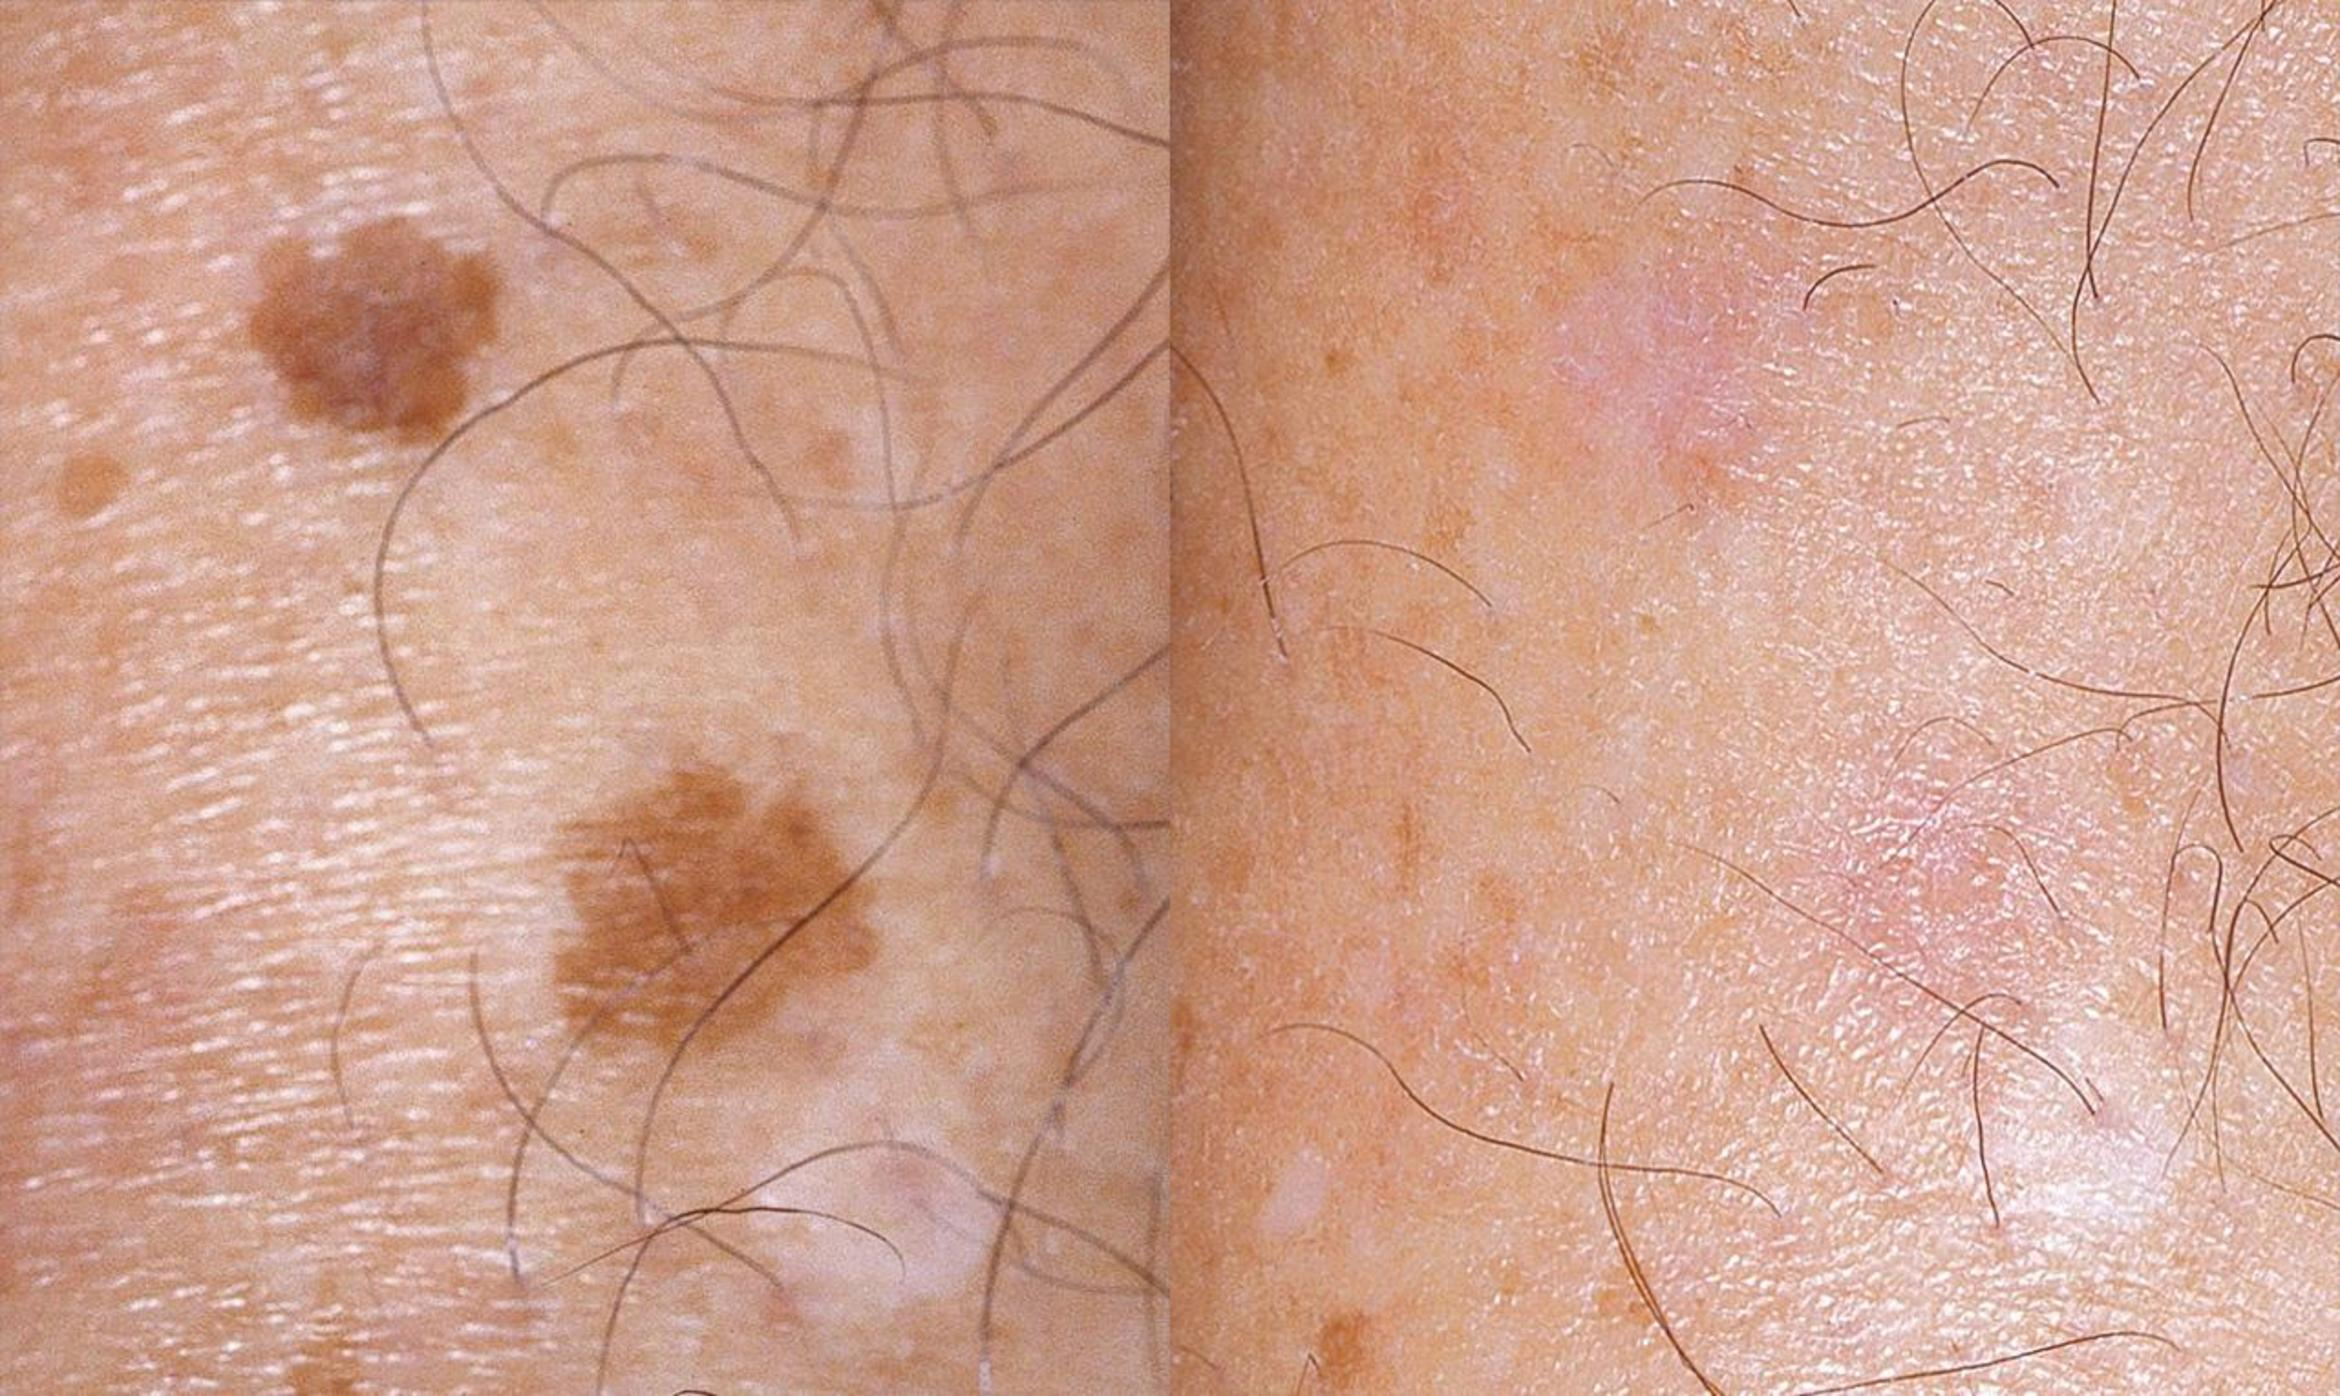 before and after photo illustrating IPL photofacials to cure age/brown spots and skin discoloration